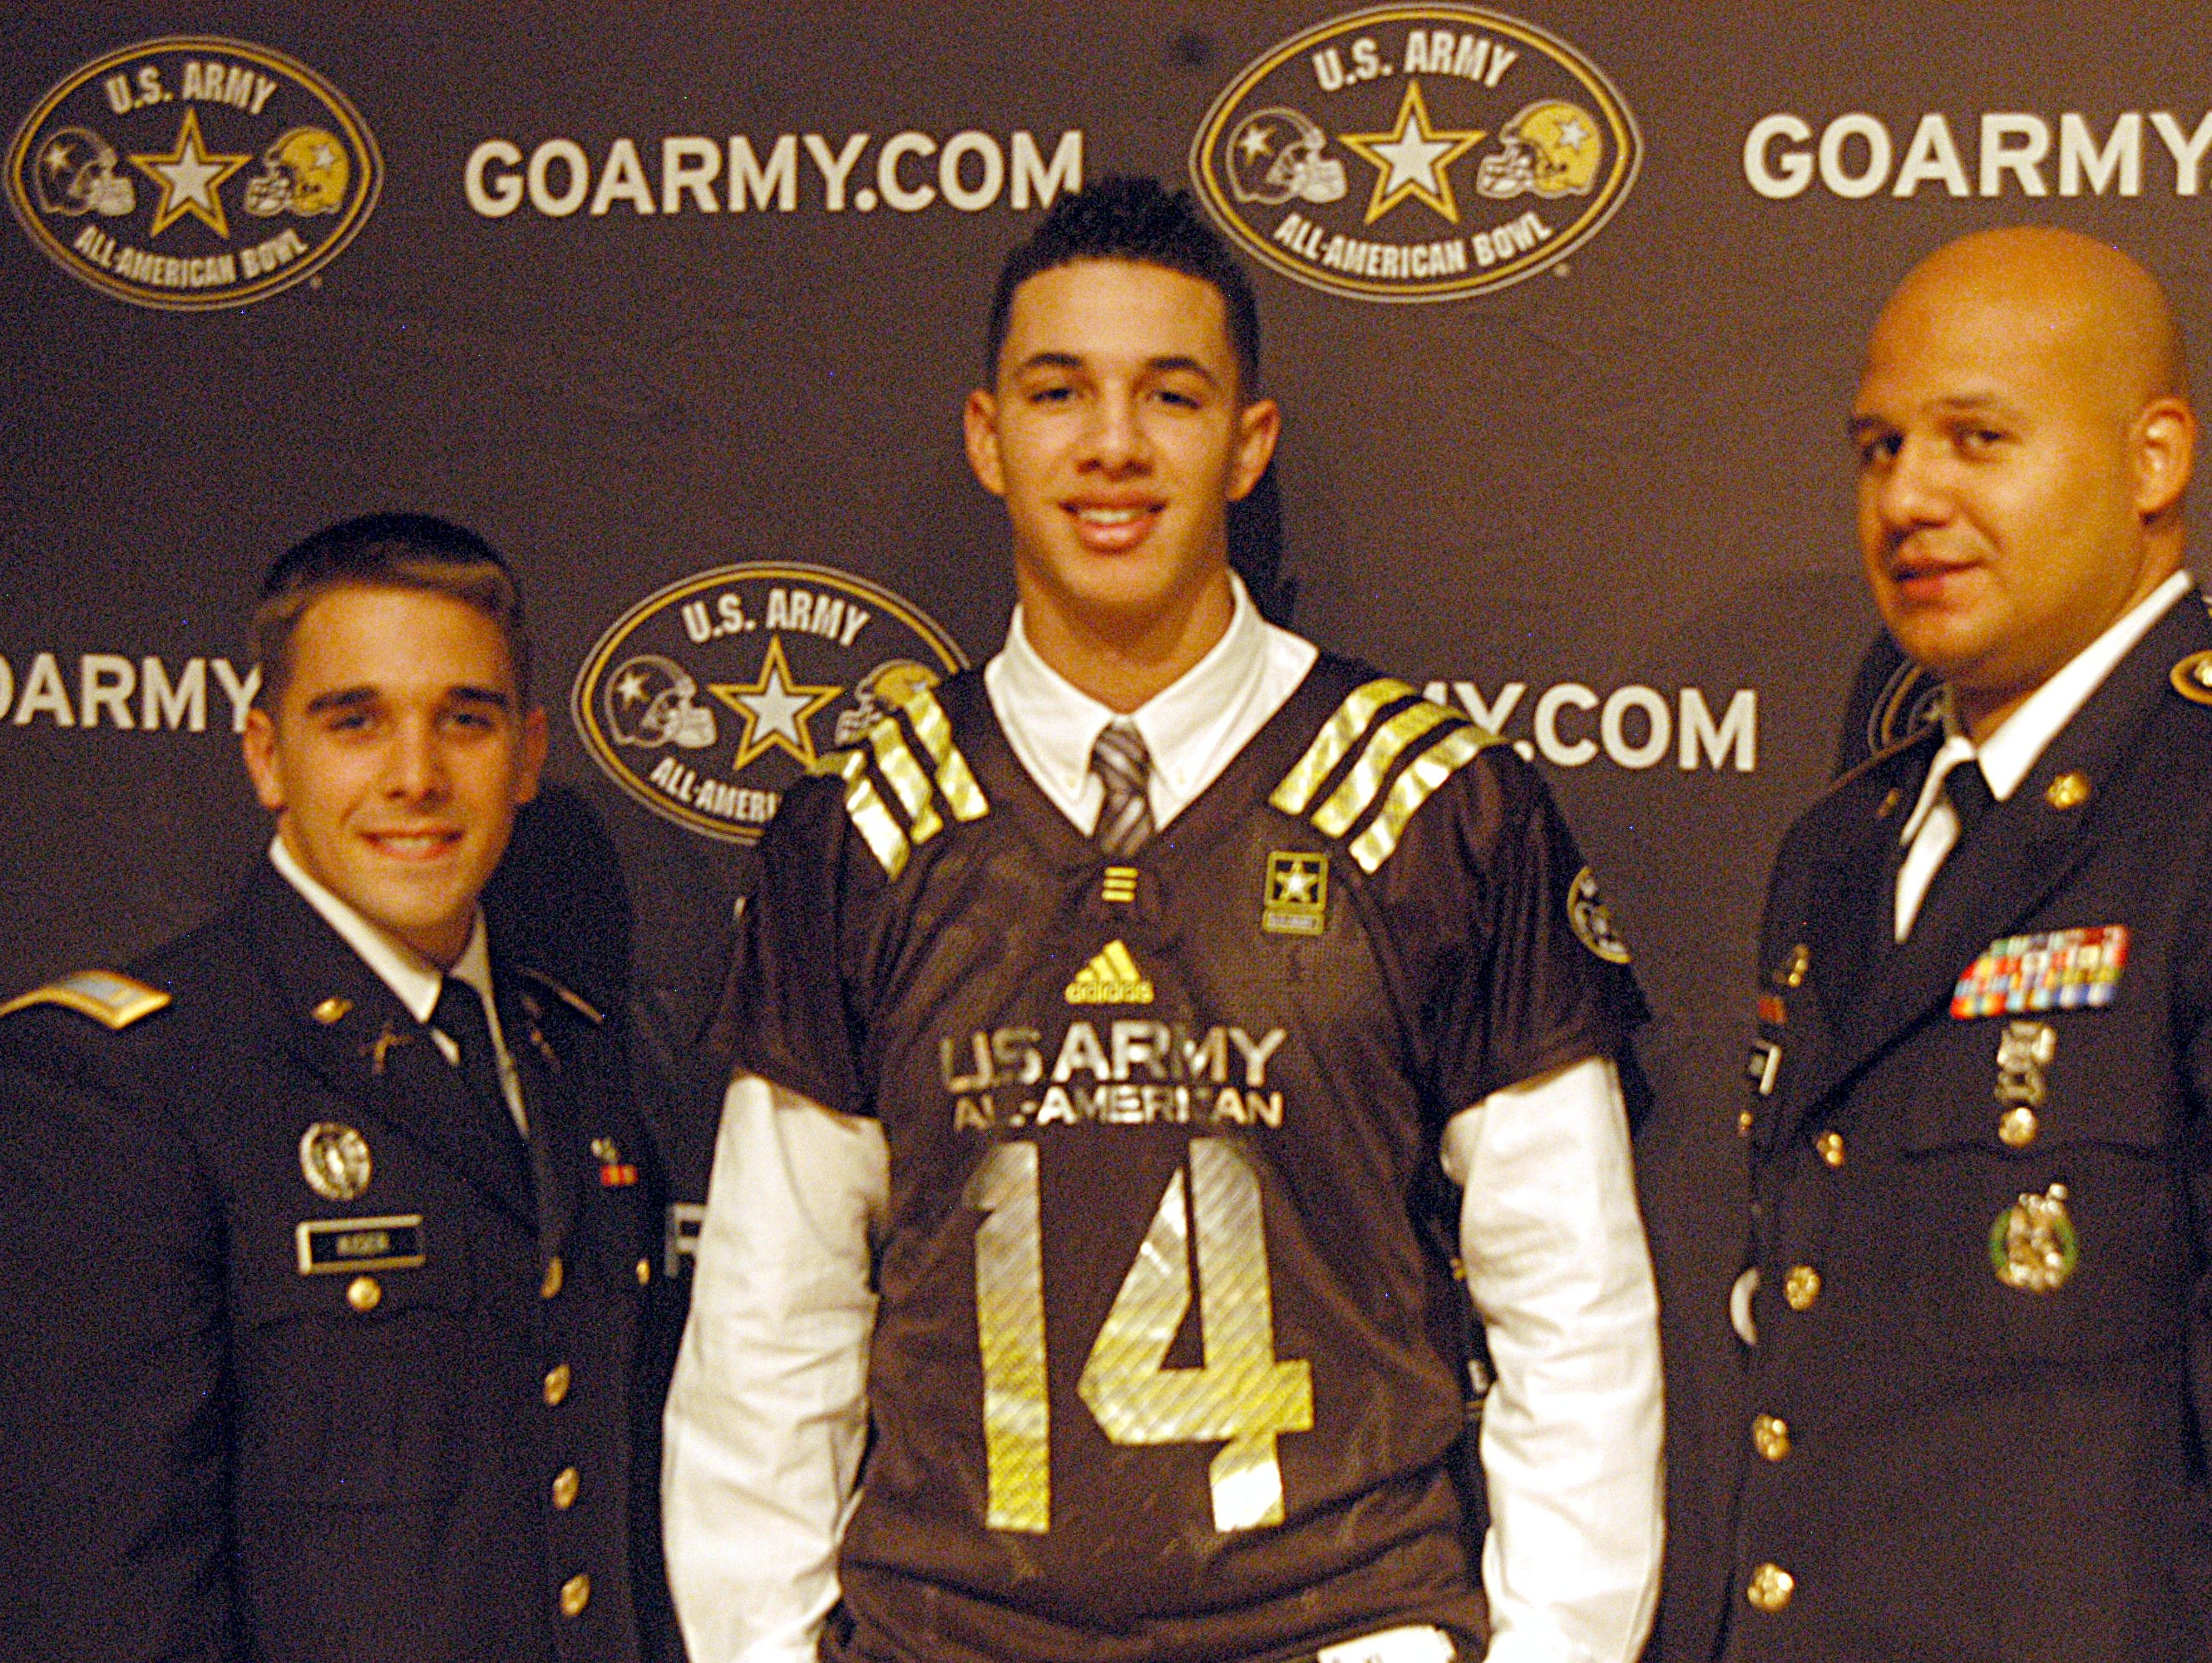 Beech High senior running back Jalen Hurd was selected for the U.S. Army All-American Bowl presentation jersey during his senior season.